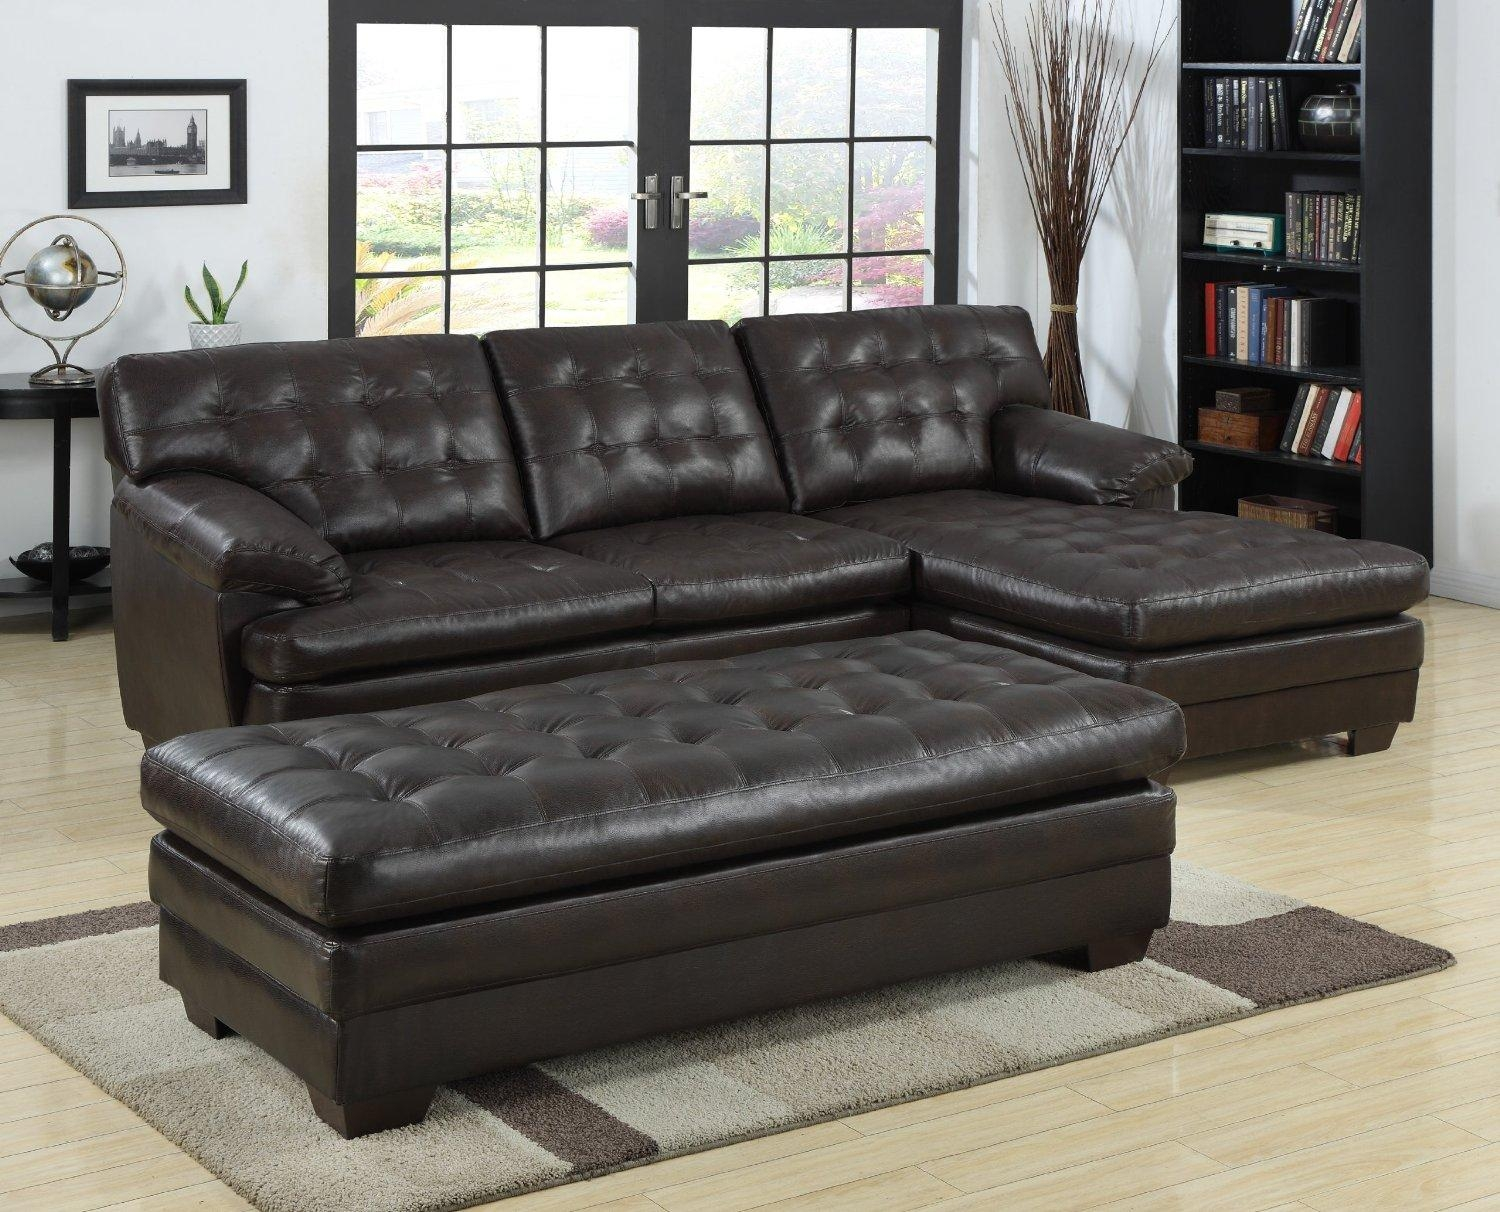 Emejing Living Room Chaise Lounge Chairs Contemporary. Modern with regard to Black Leather Chaise Sofas